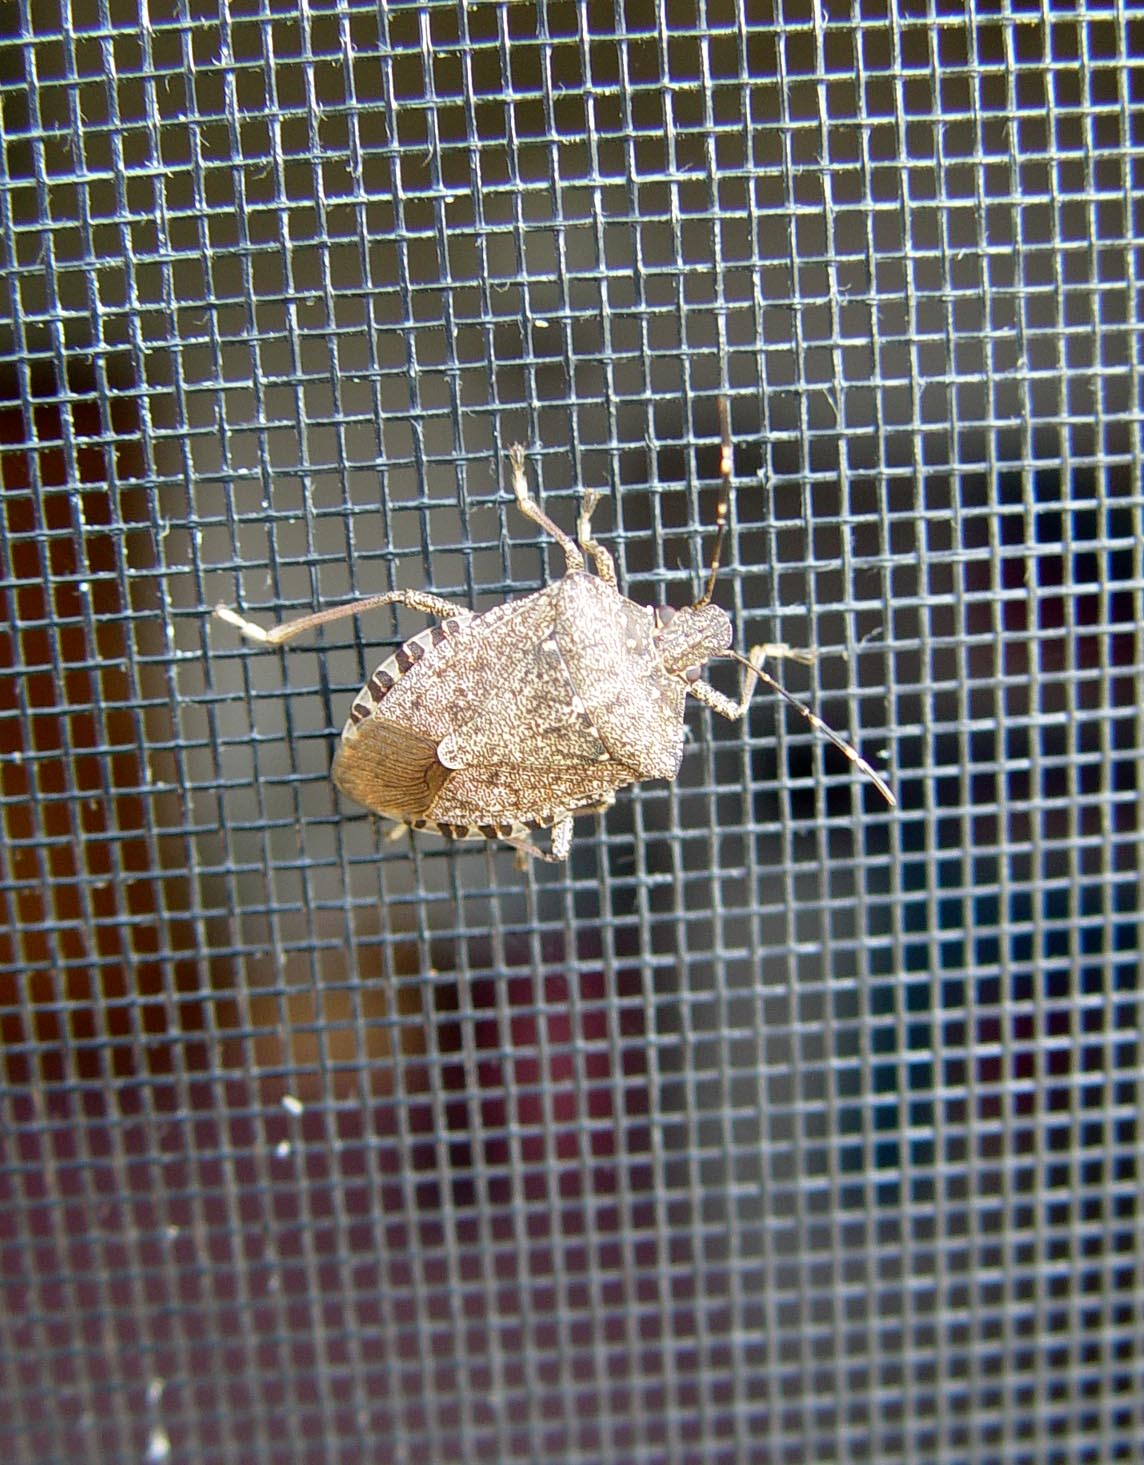 stinkbug-on_-a-screen